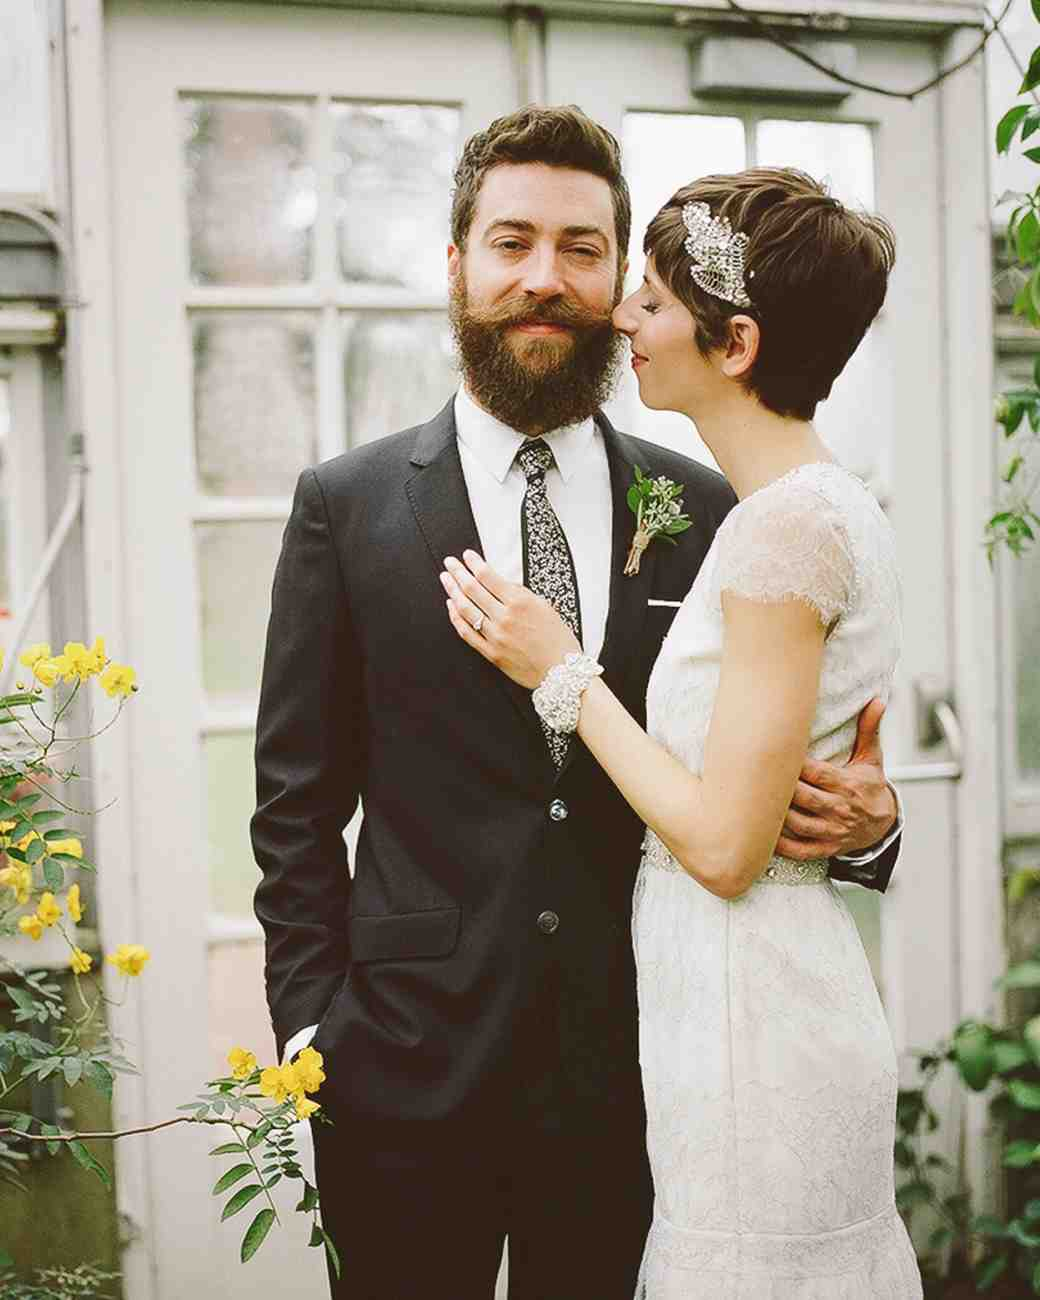 Wedding Hairstyle For Man: Find The Best Beard Styles For A Perfect Wedding In 2018